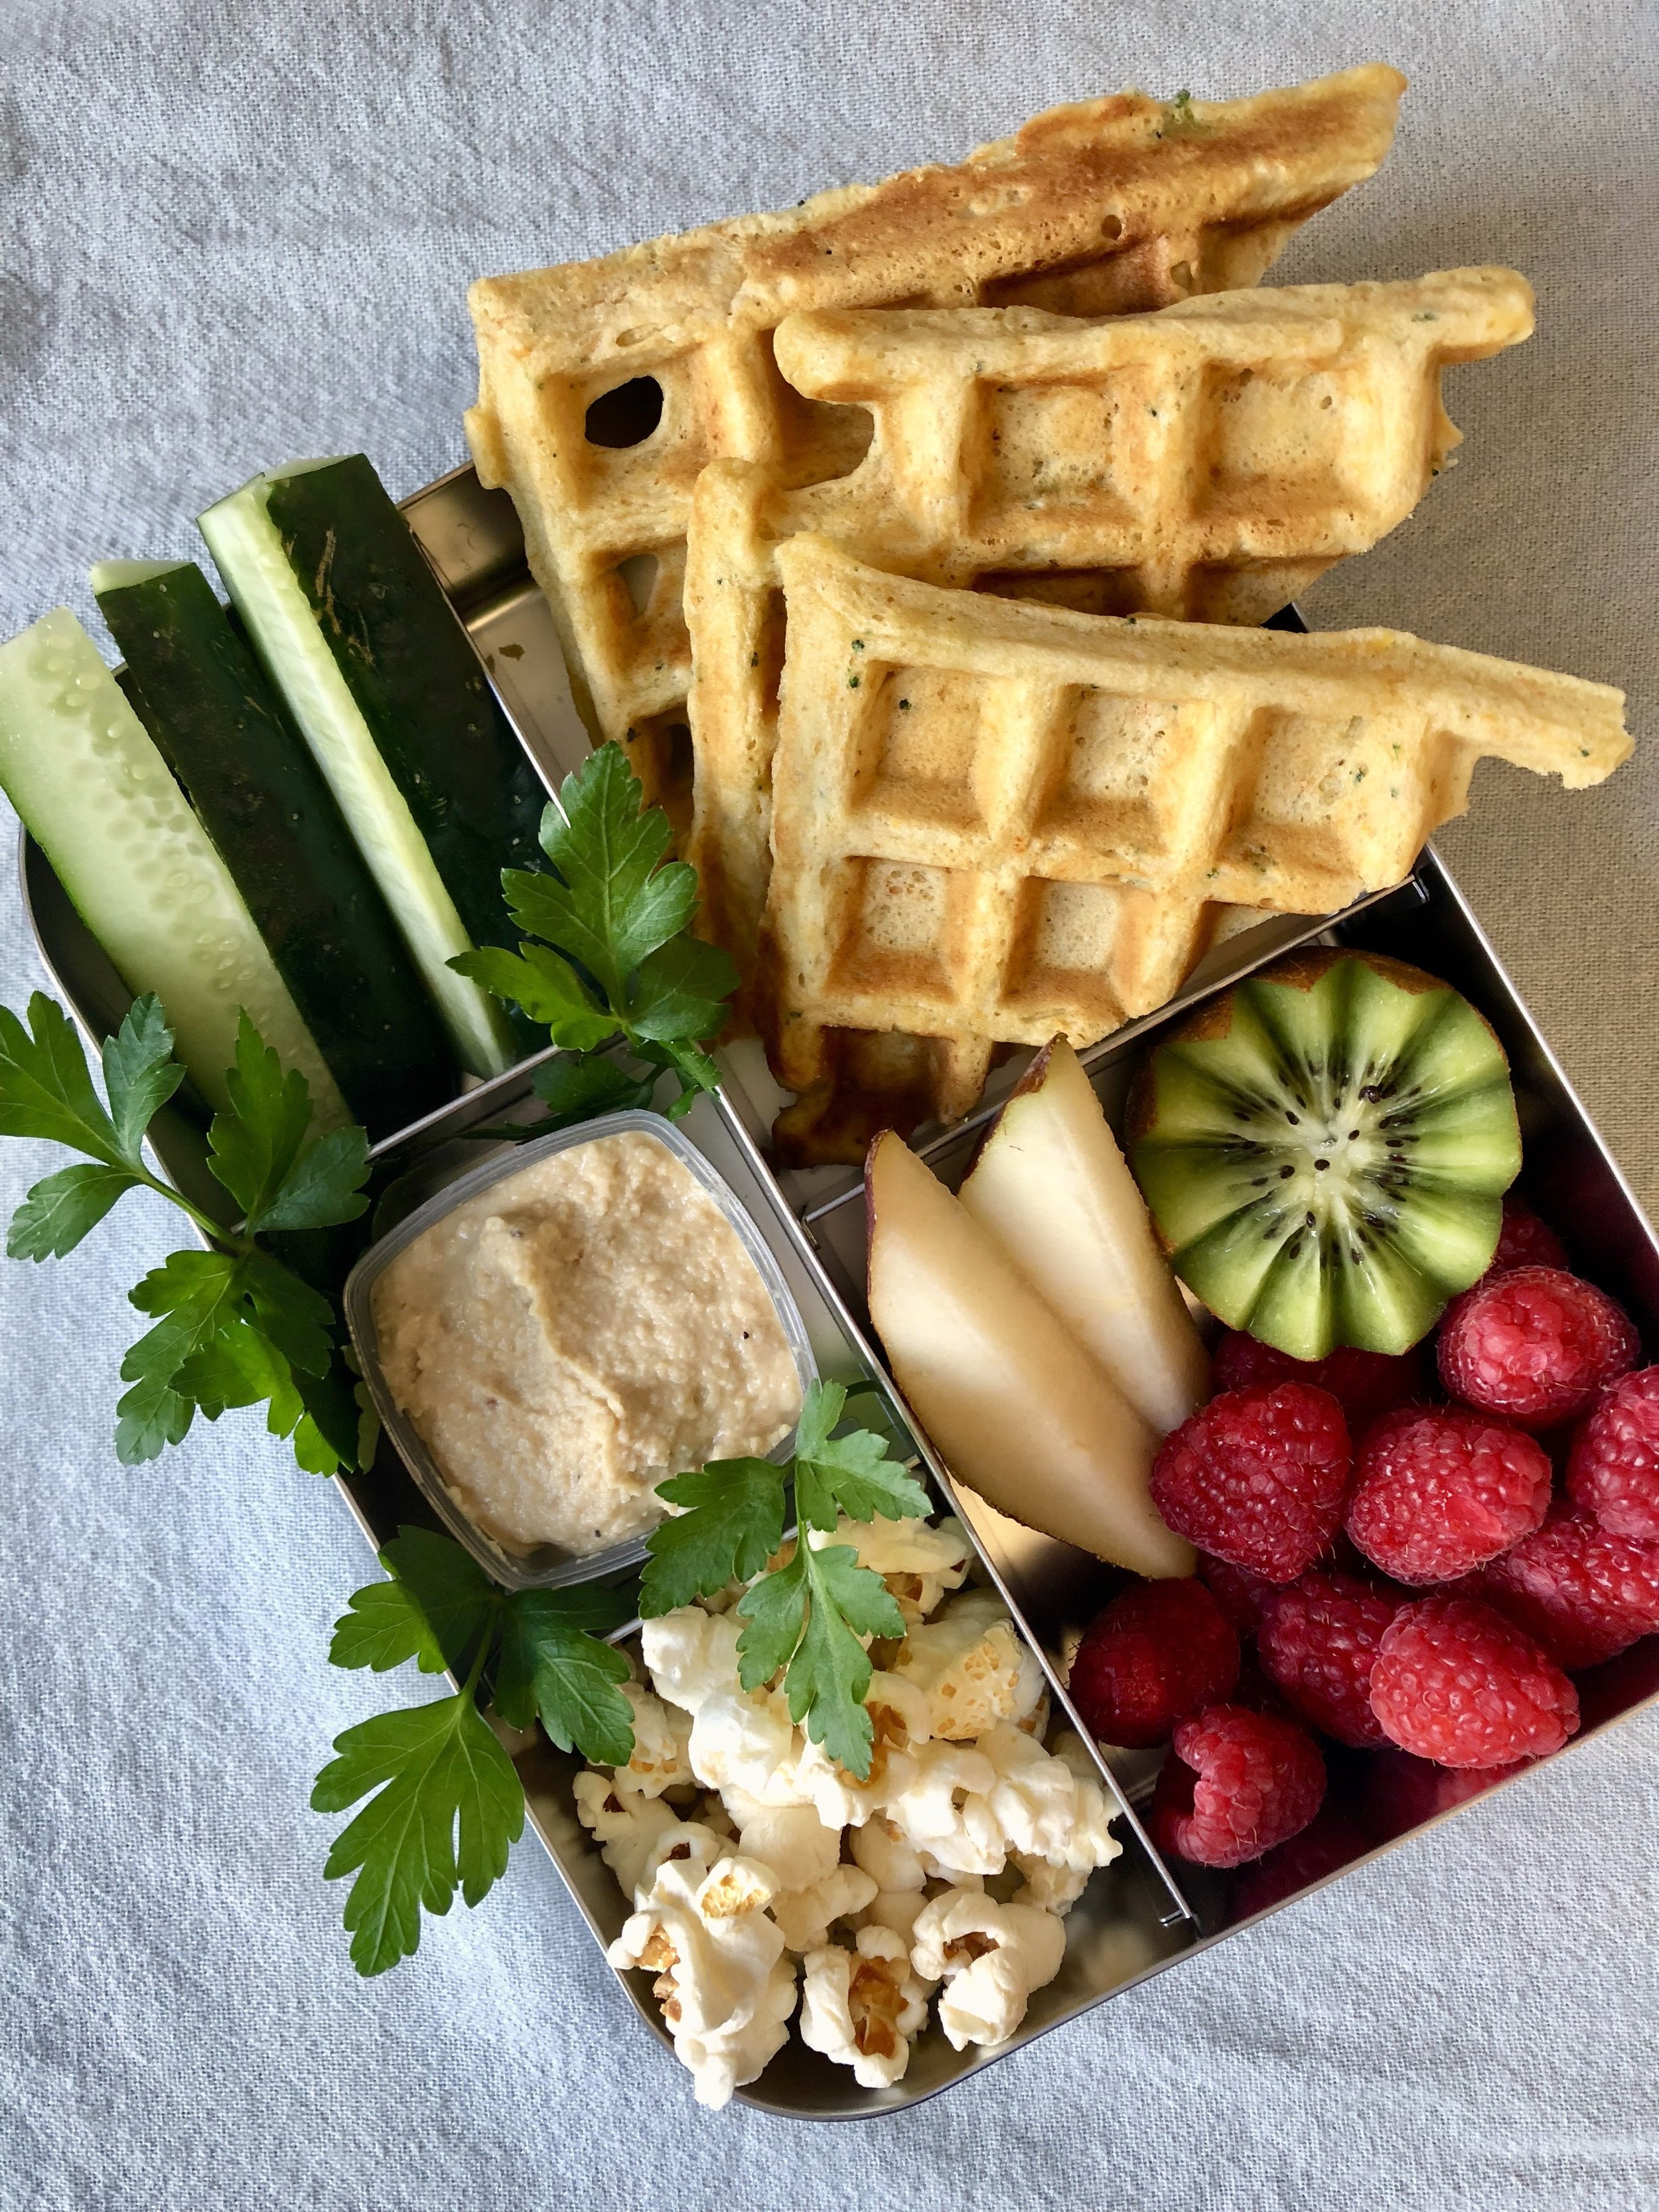 veggie waffles for a nut free lunchbox. Prep once eat twice, easy recipe.